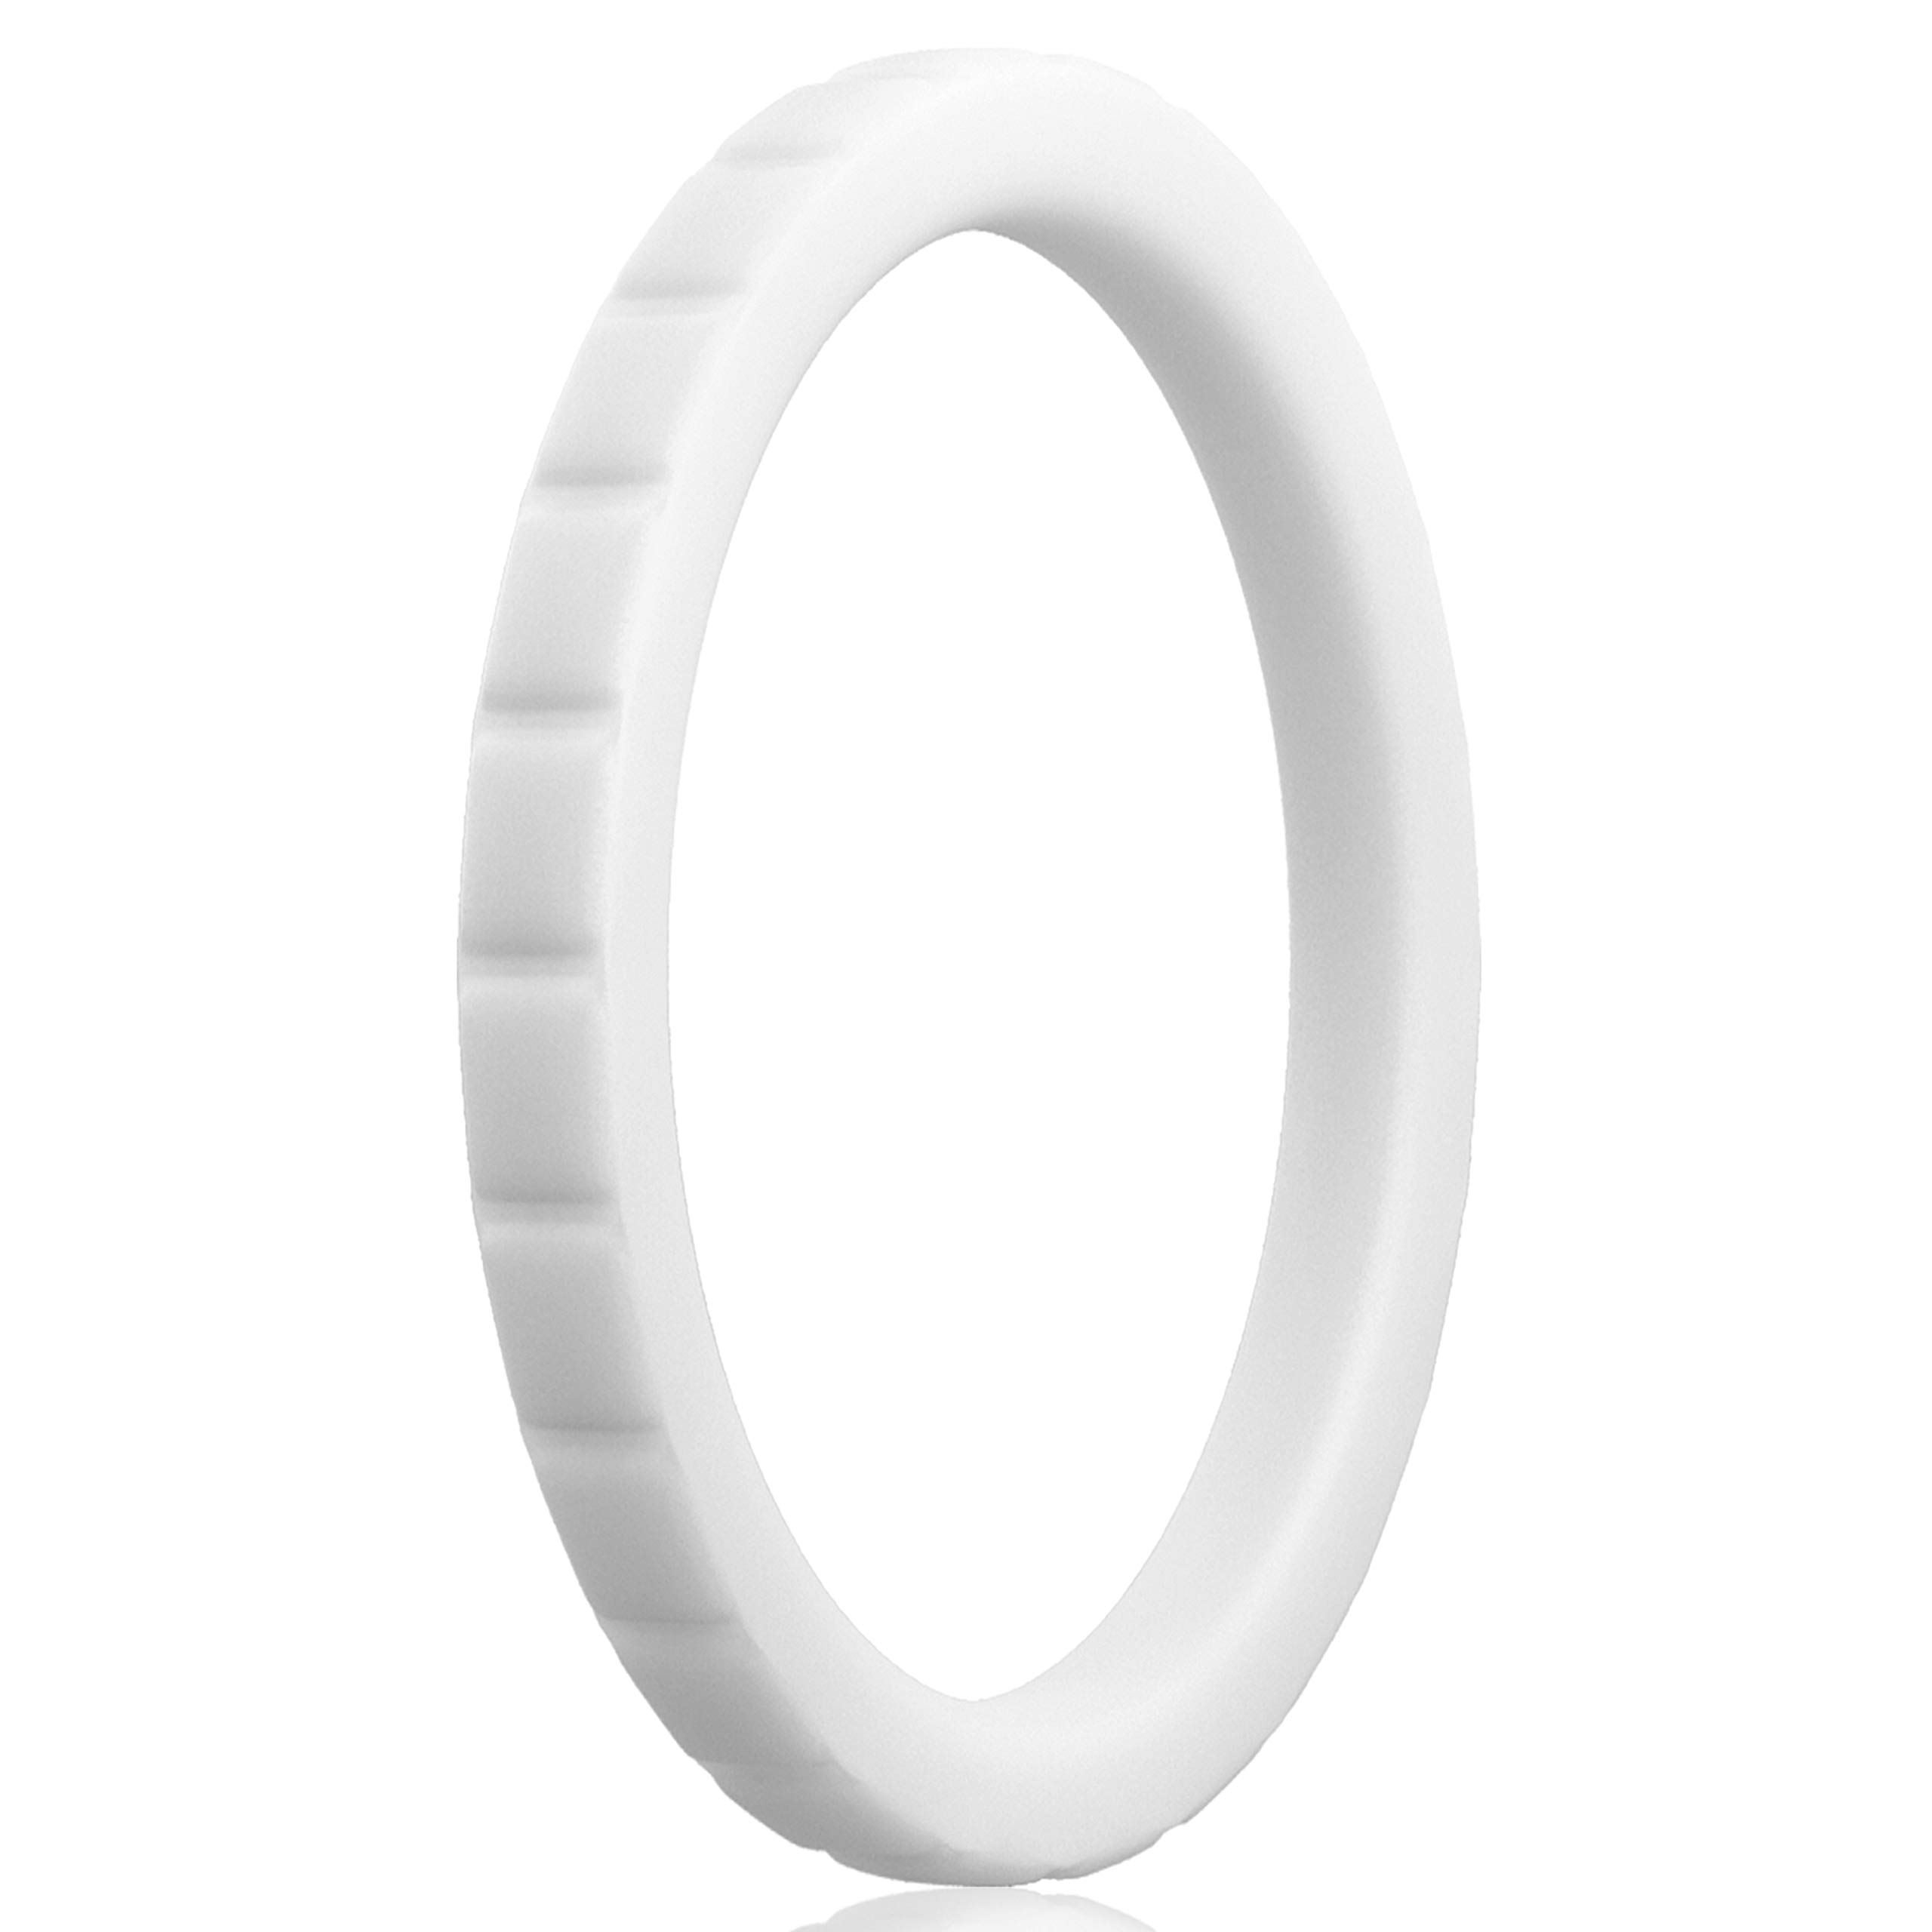 Women Silicone Wedding Band - Thin Stackable Ring - Square Diamonds - 2.8mm Wide - 2mm Thick